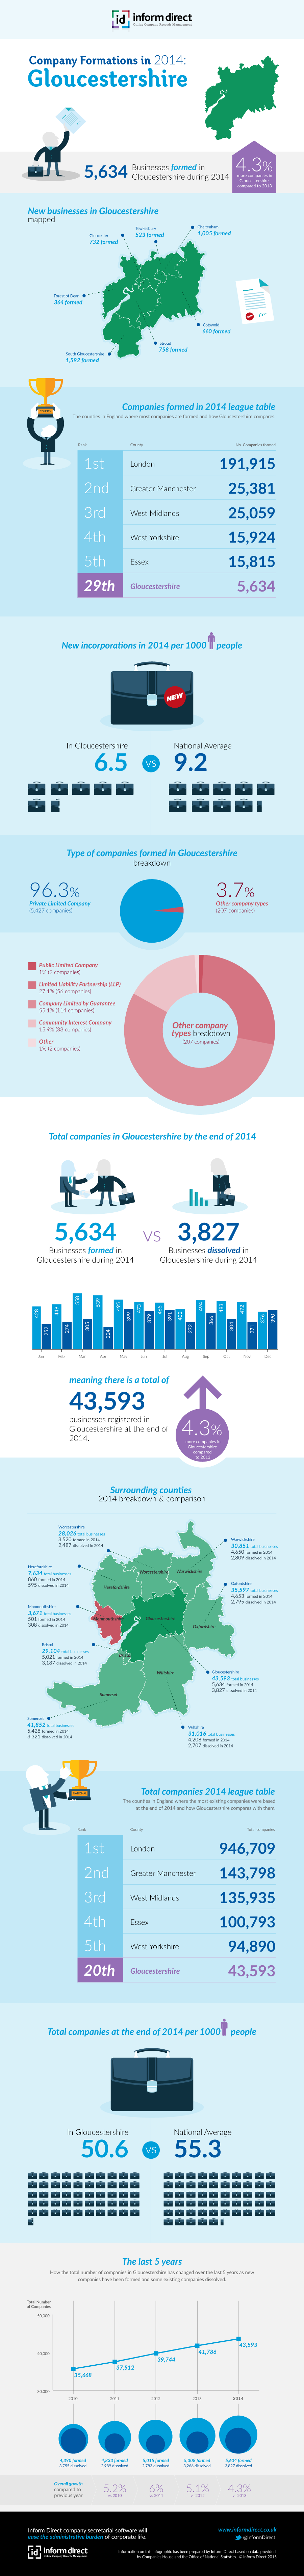 Inform Direct - Company Formations in Gloucestershire 2014 Infographic